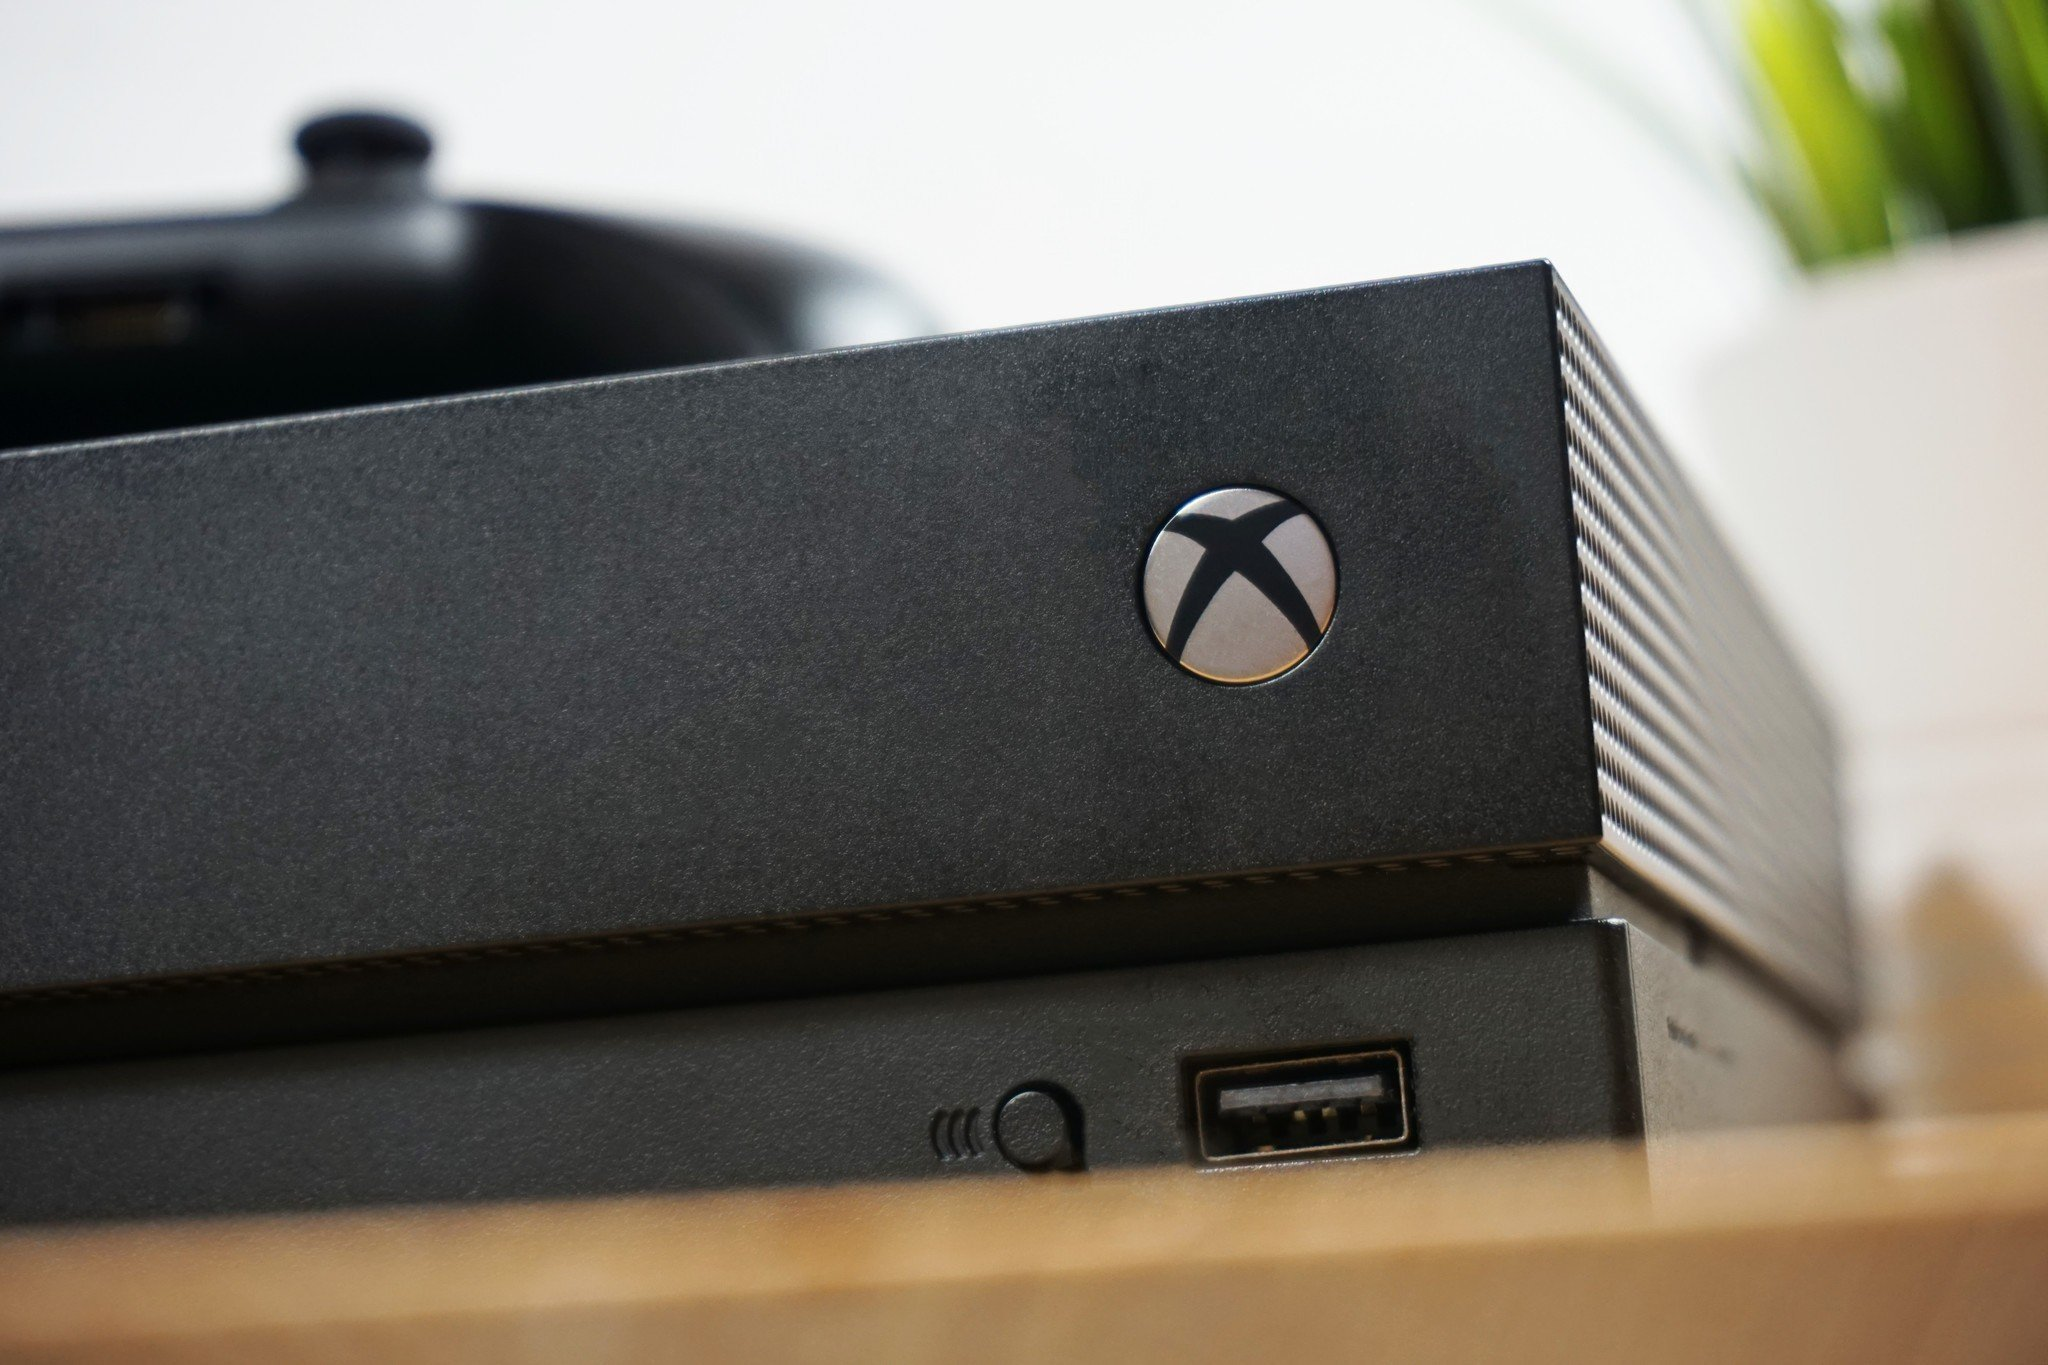 hight resolution of the xbox one cuts out the complexities of gaming with a seamless setup and gaming experience unbox it plug it in walk through a few steps of set up